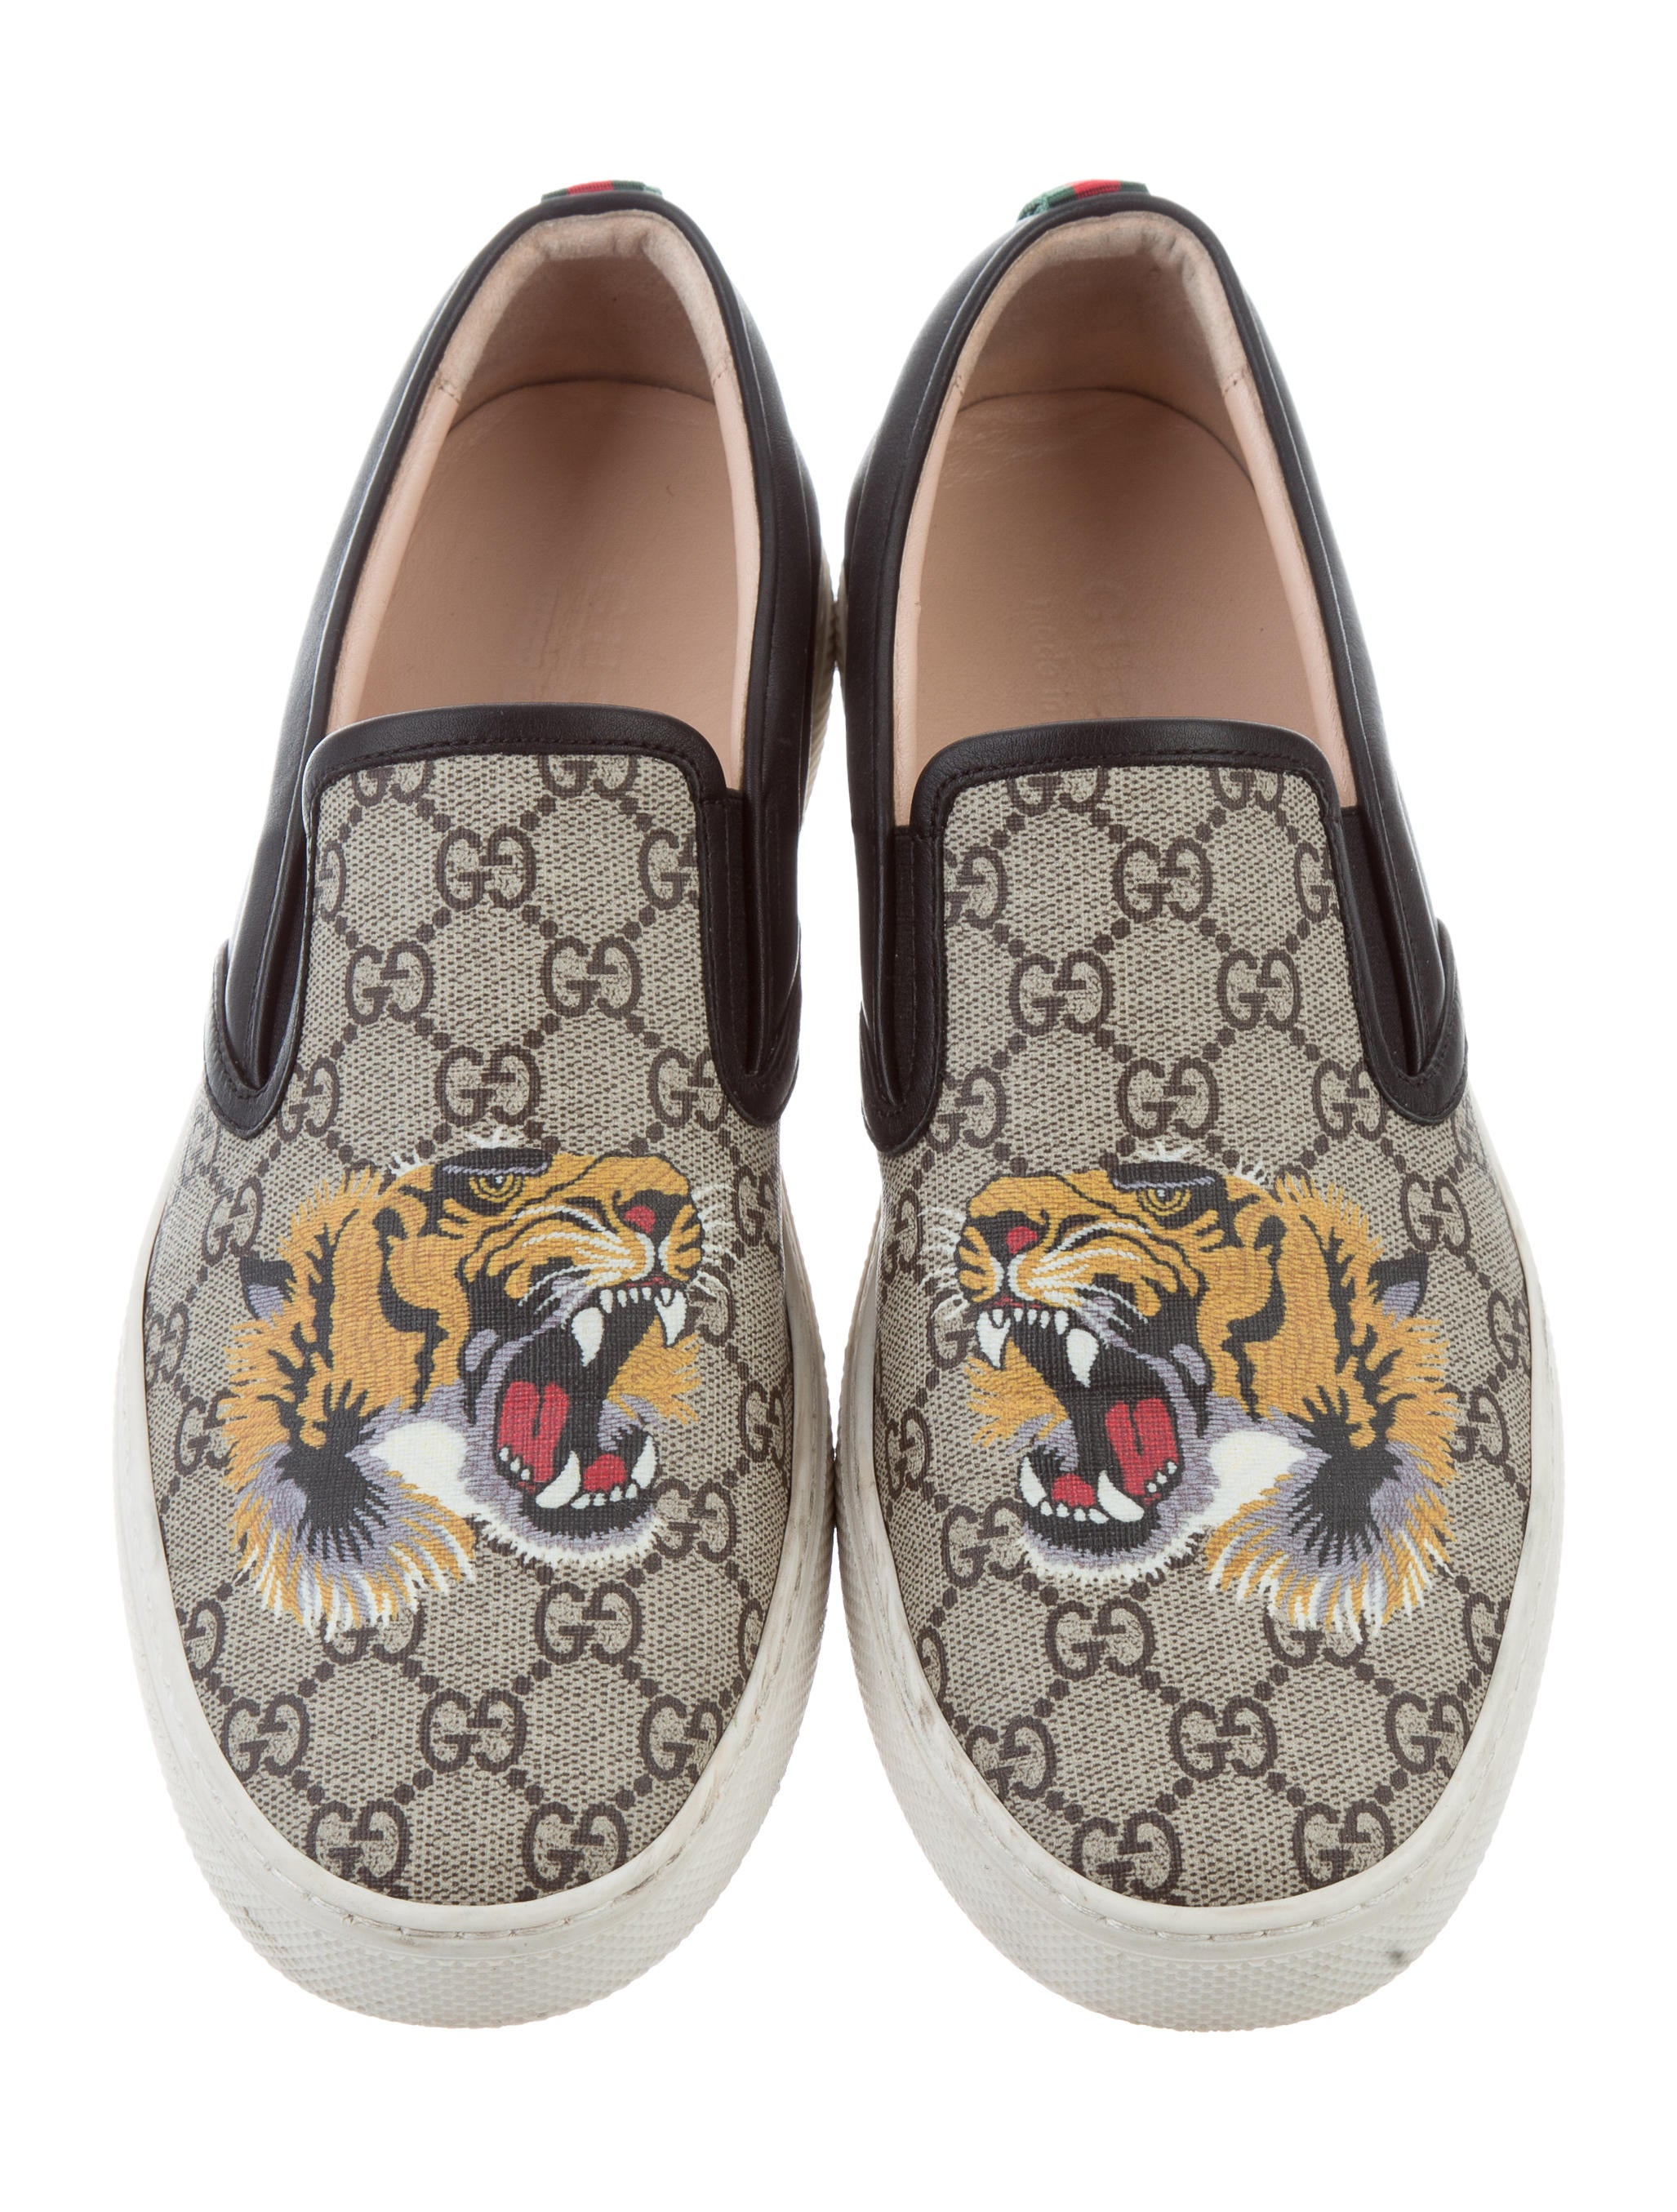 Gucci Supreme Tiger Slip On Sneakers Shoes GUC158583  : GUC1585833enlarged from www.therealreal.com size 2054 x 2709 jpeg 658kB